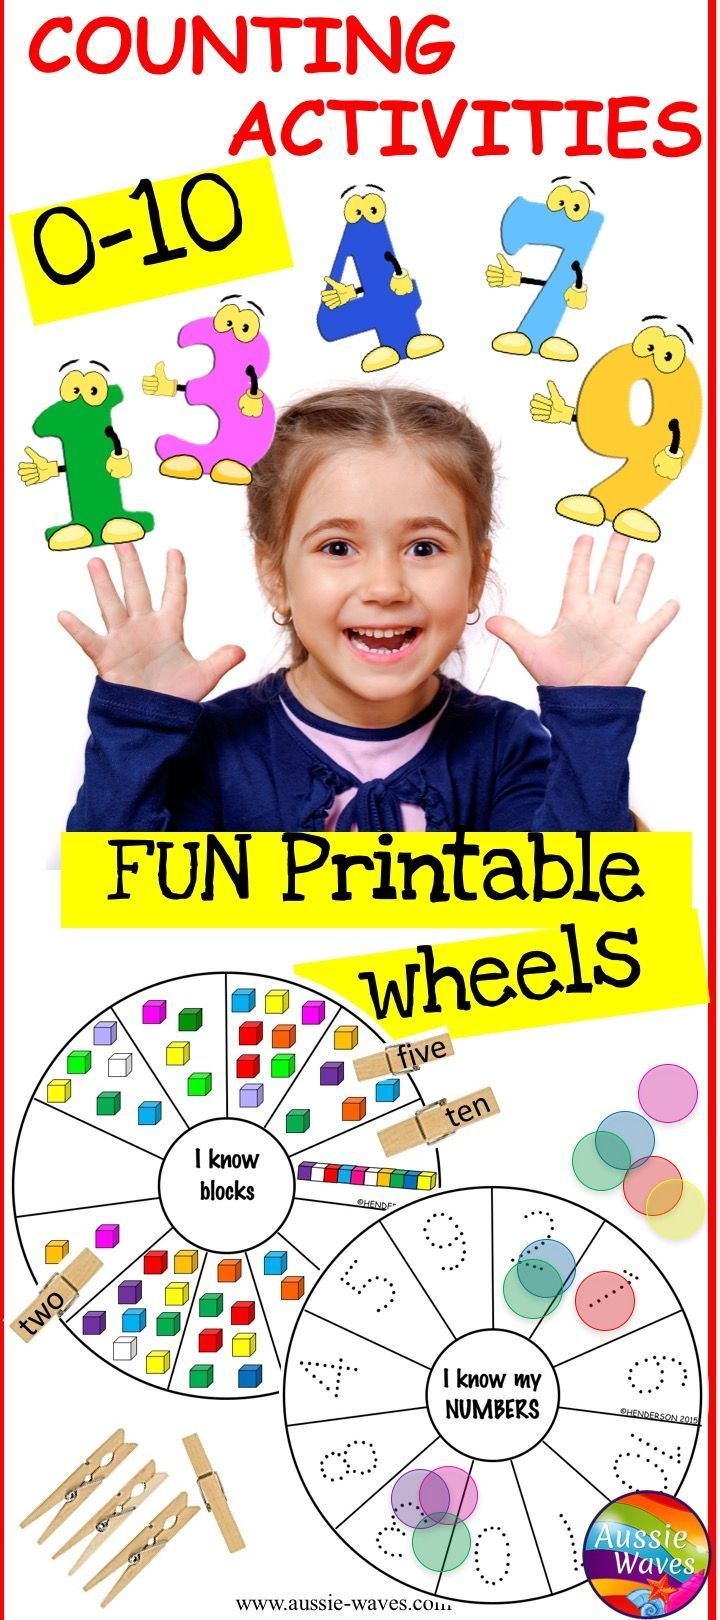 Fun, printable COUNTING ACTIVITIES for Preschool and Kinder kids. Teaching counting numbers 0-10